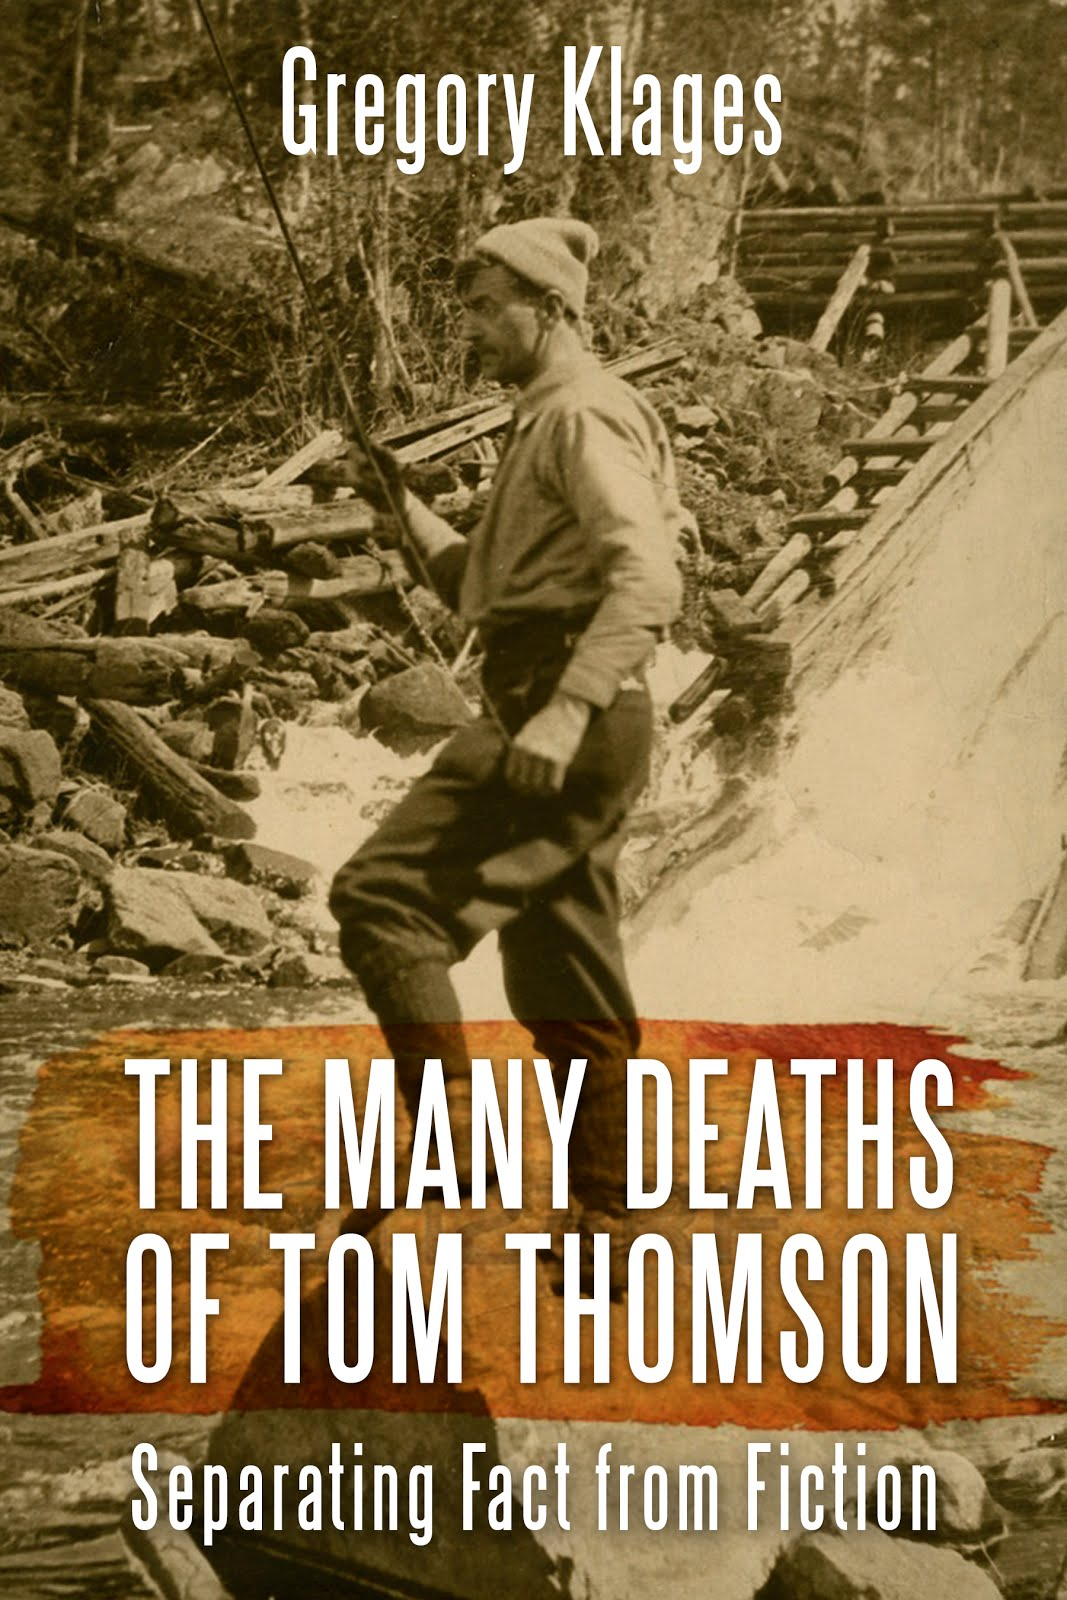 Many Deaths of Tom Thomson